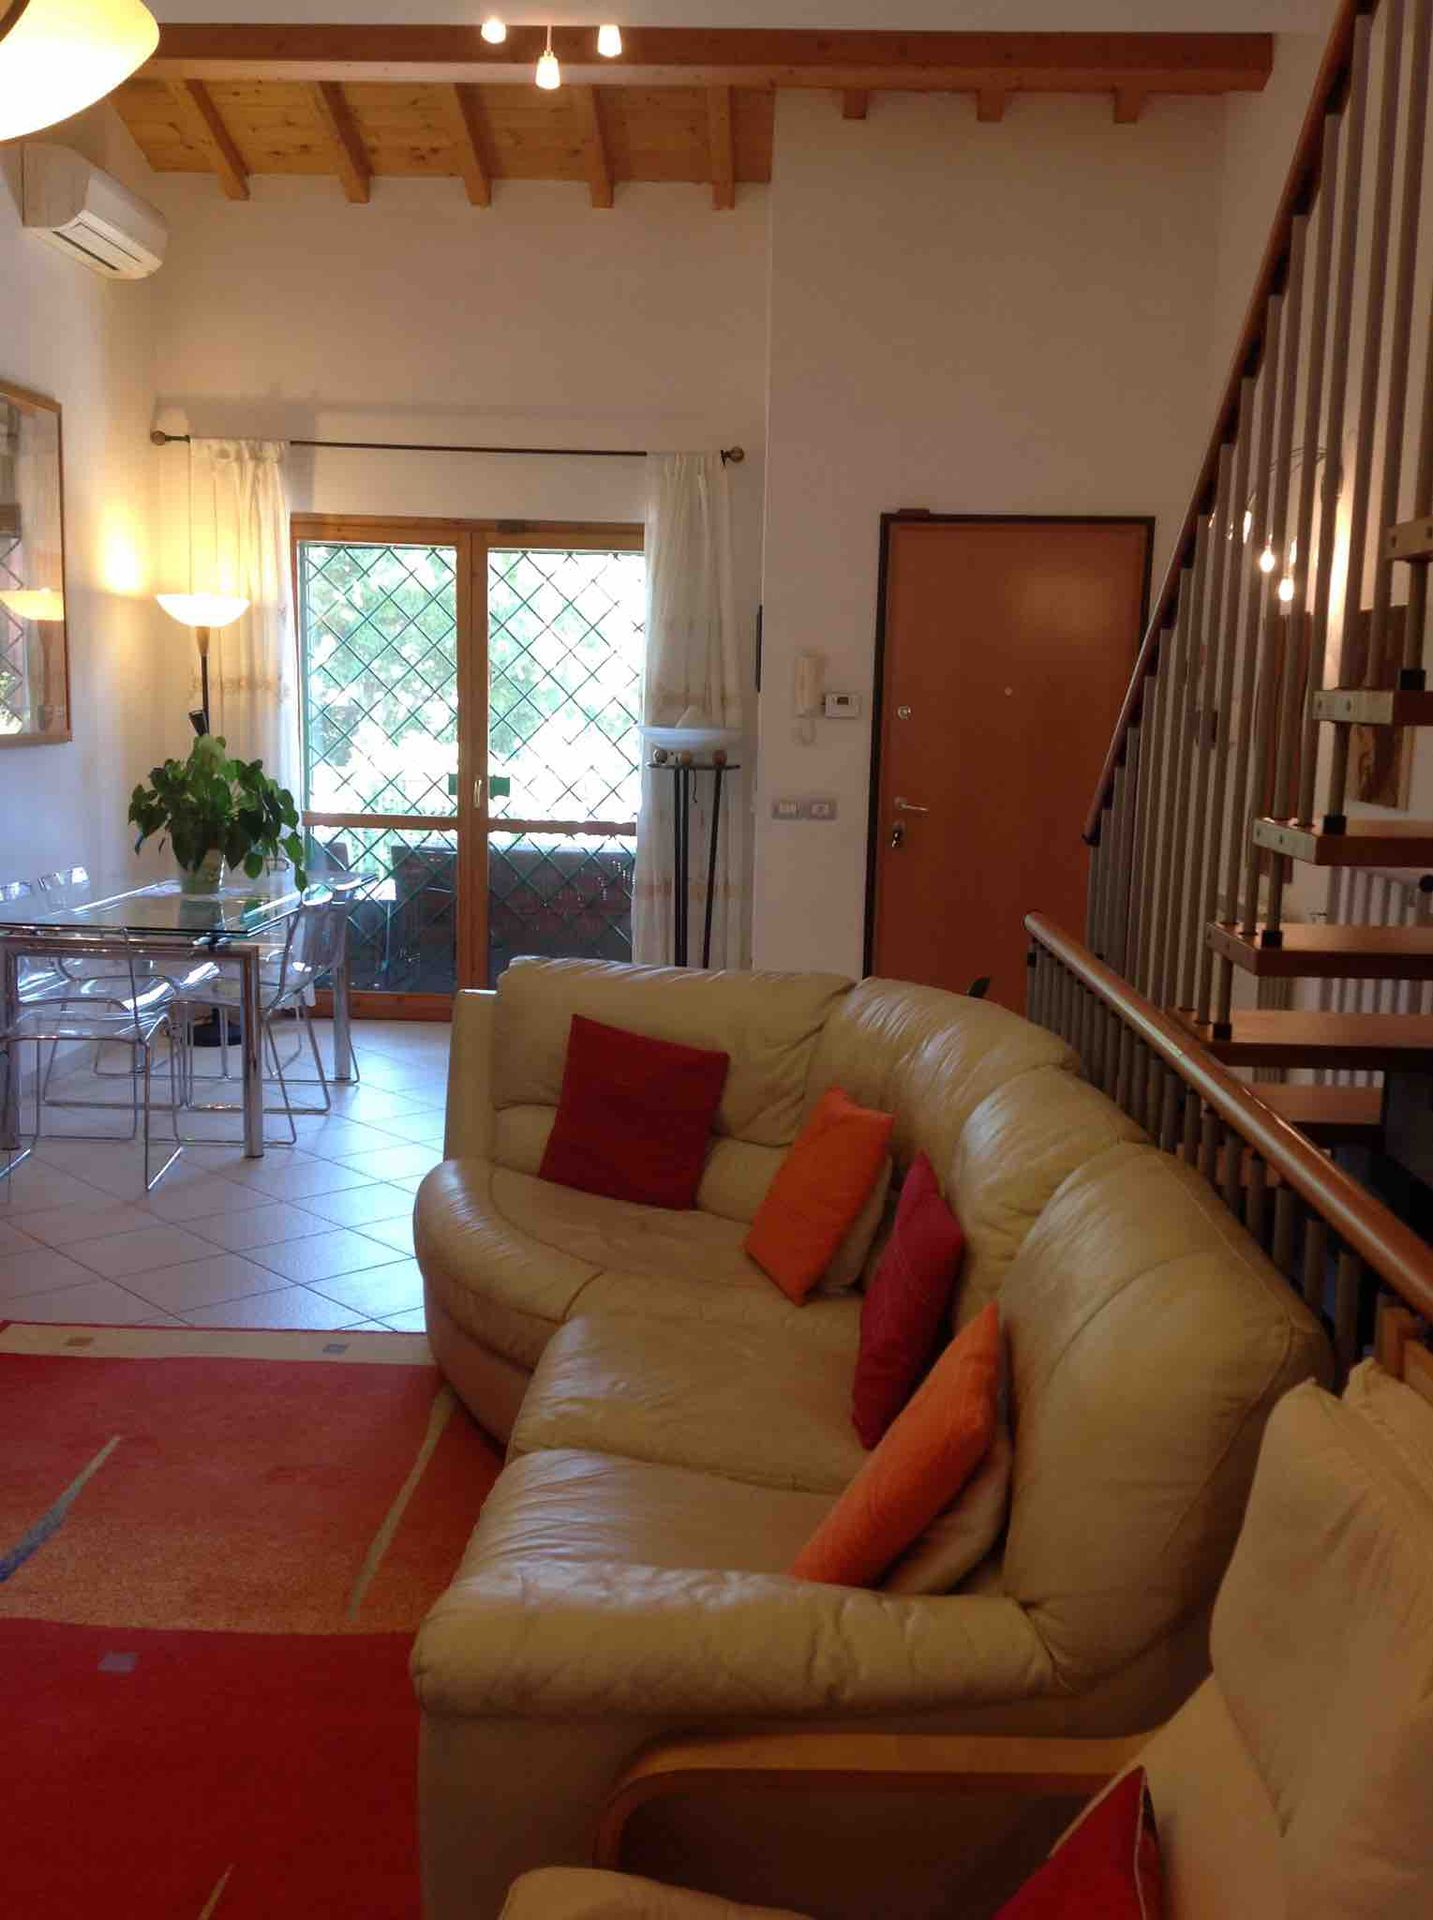 House on 3 floors w/ garden, 30 min from city centre LOOKING FOR NYC ...